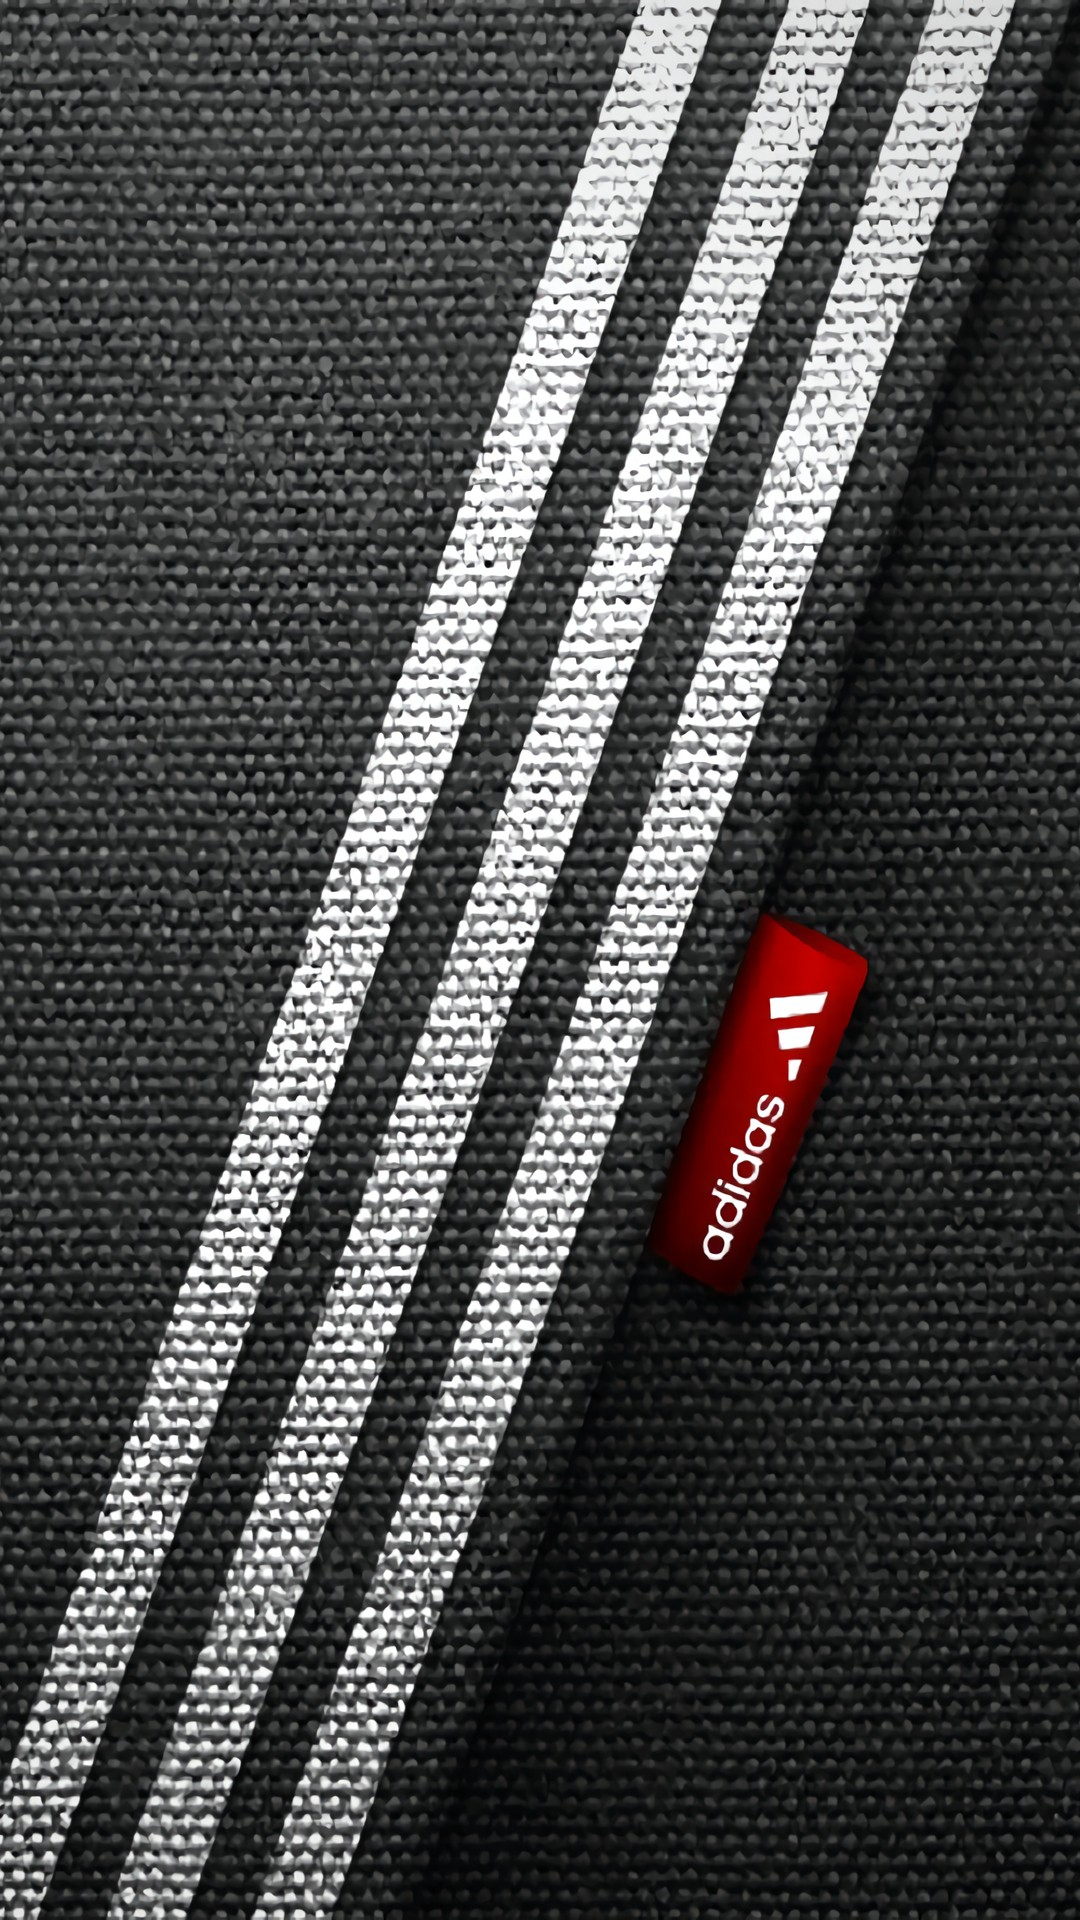 Cars 2 Wallpaper For Phone Adidas 2 Wallpaper 1080x1920